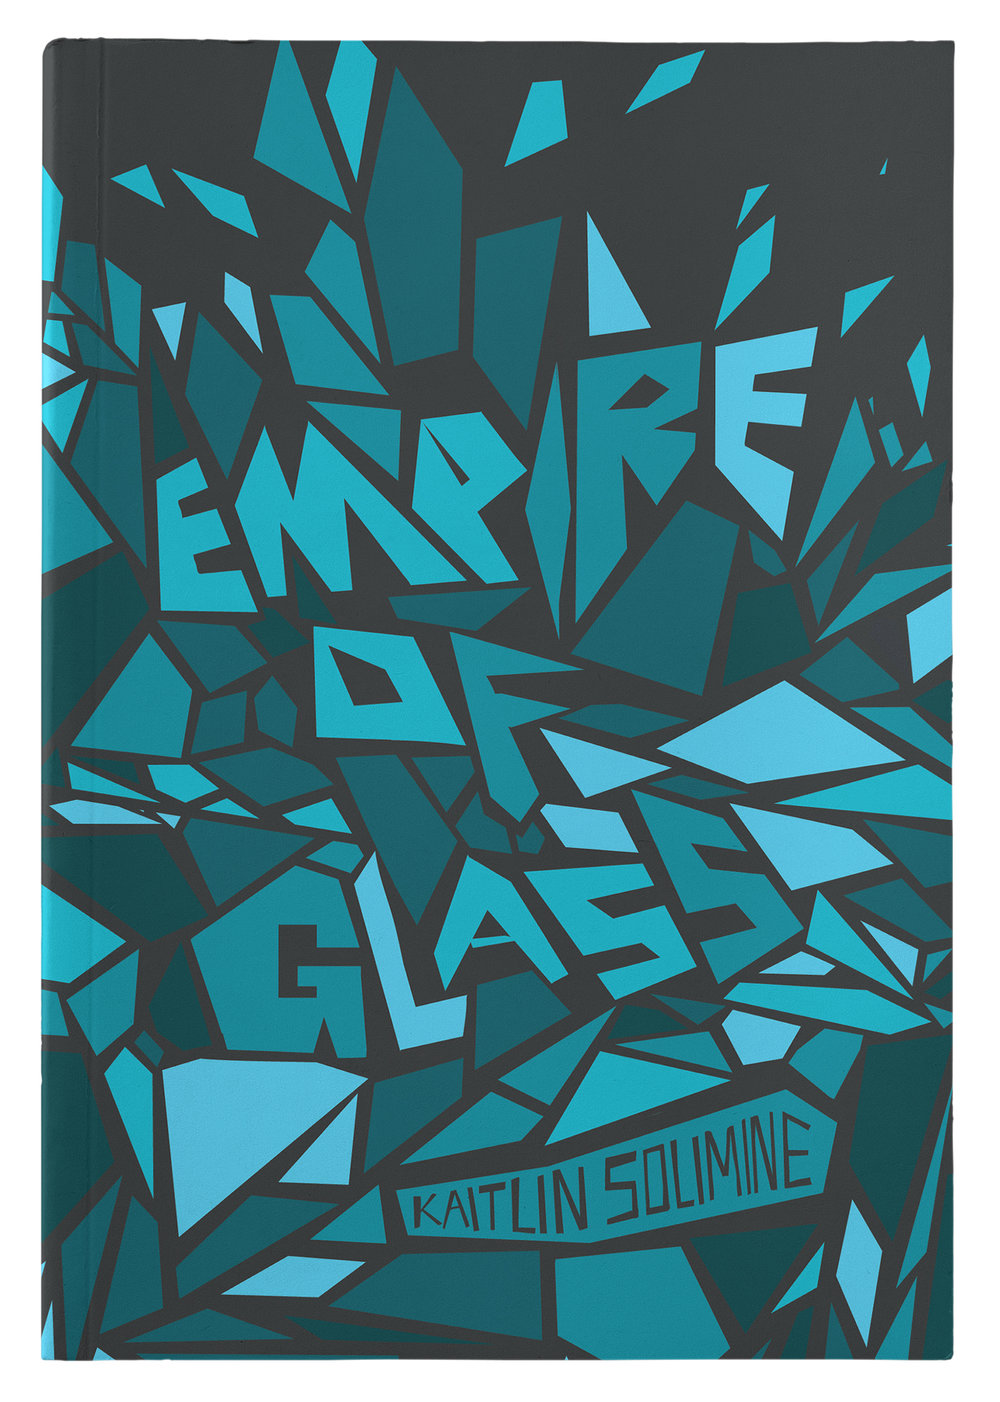 Empire of Glass by Kaitlin Solimine